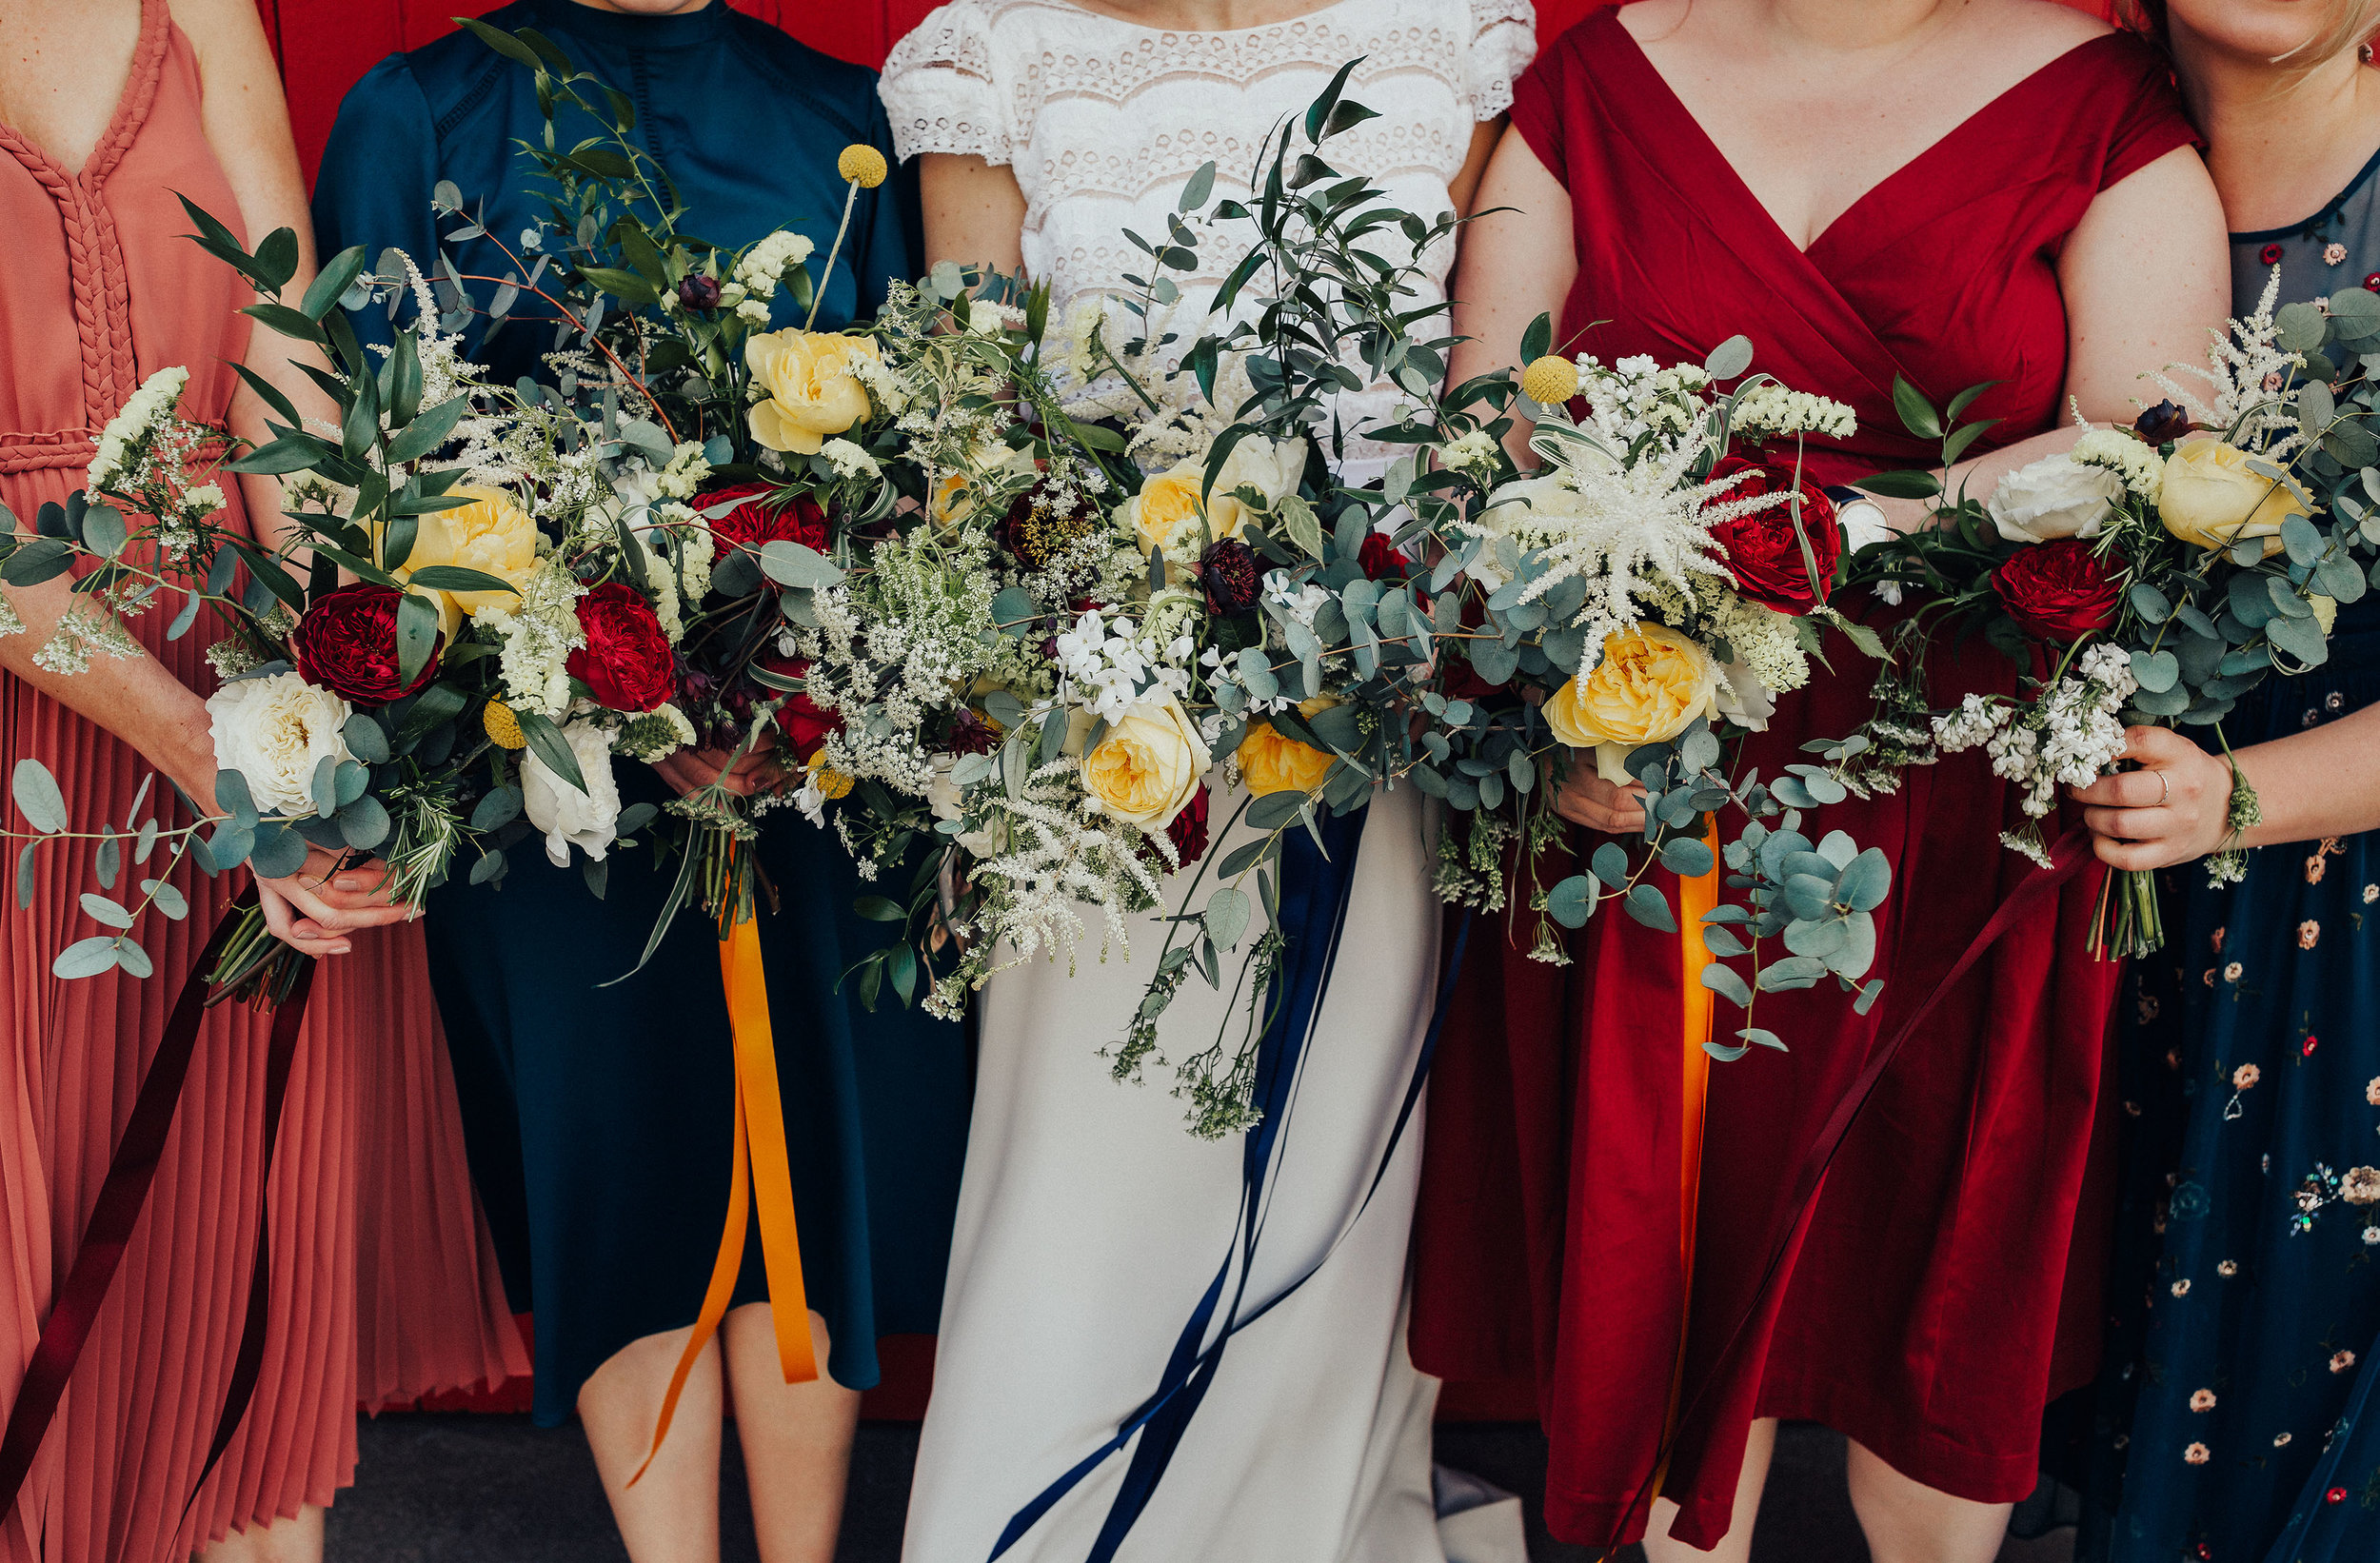 TIMBERYARD_EDINBURGH_WEDDING_PJ_PHILLIPS_PHOTOGRAPHY_136.jpg